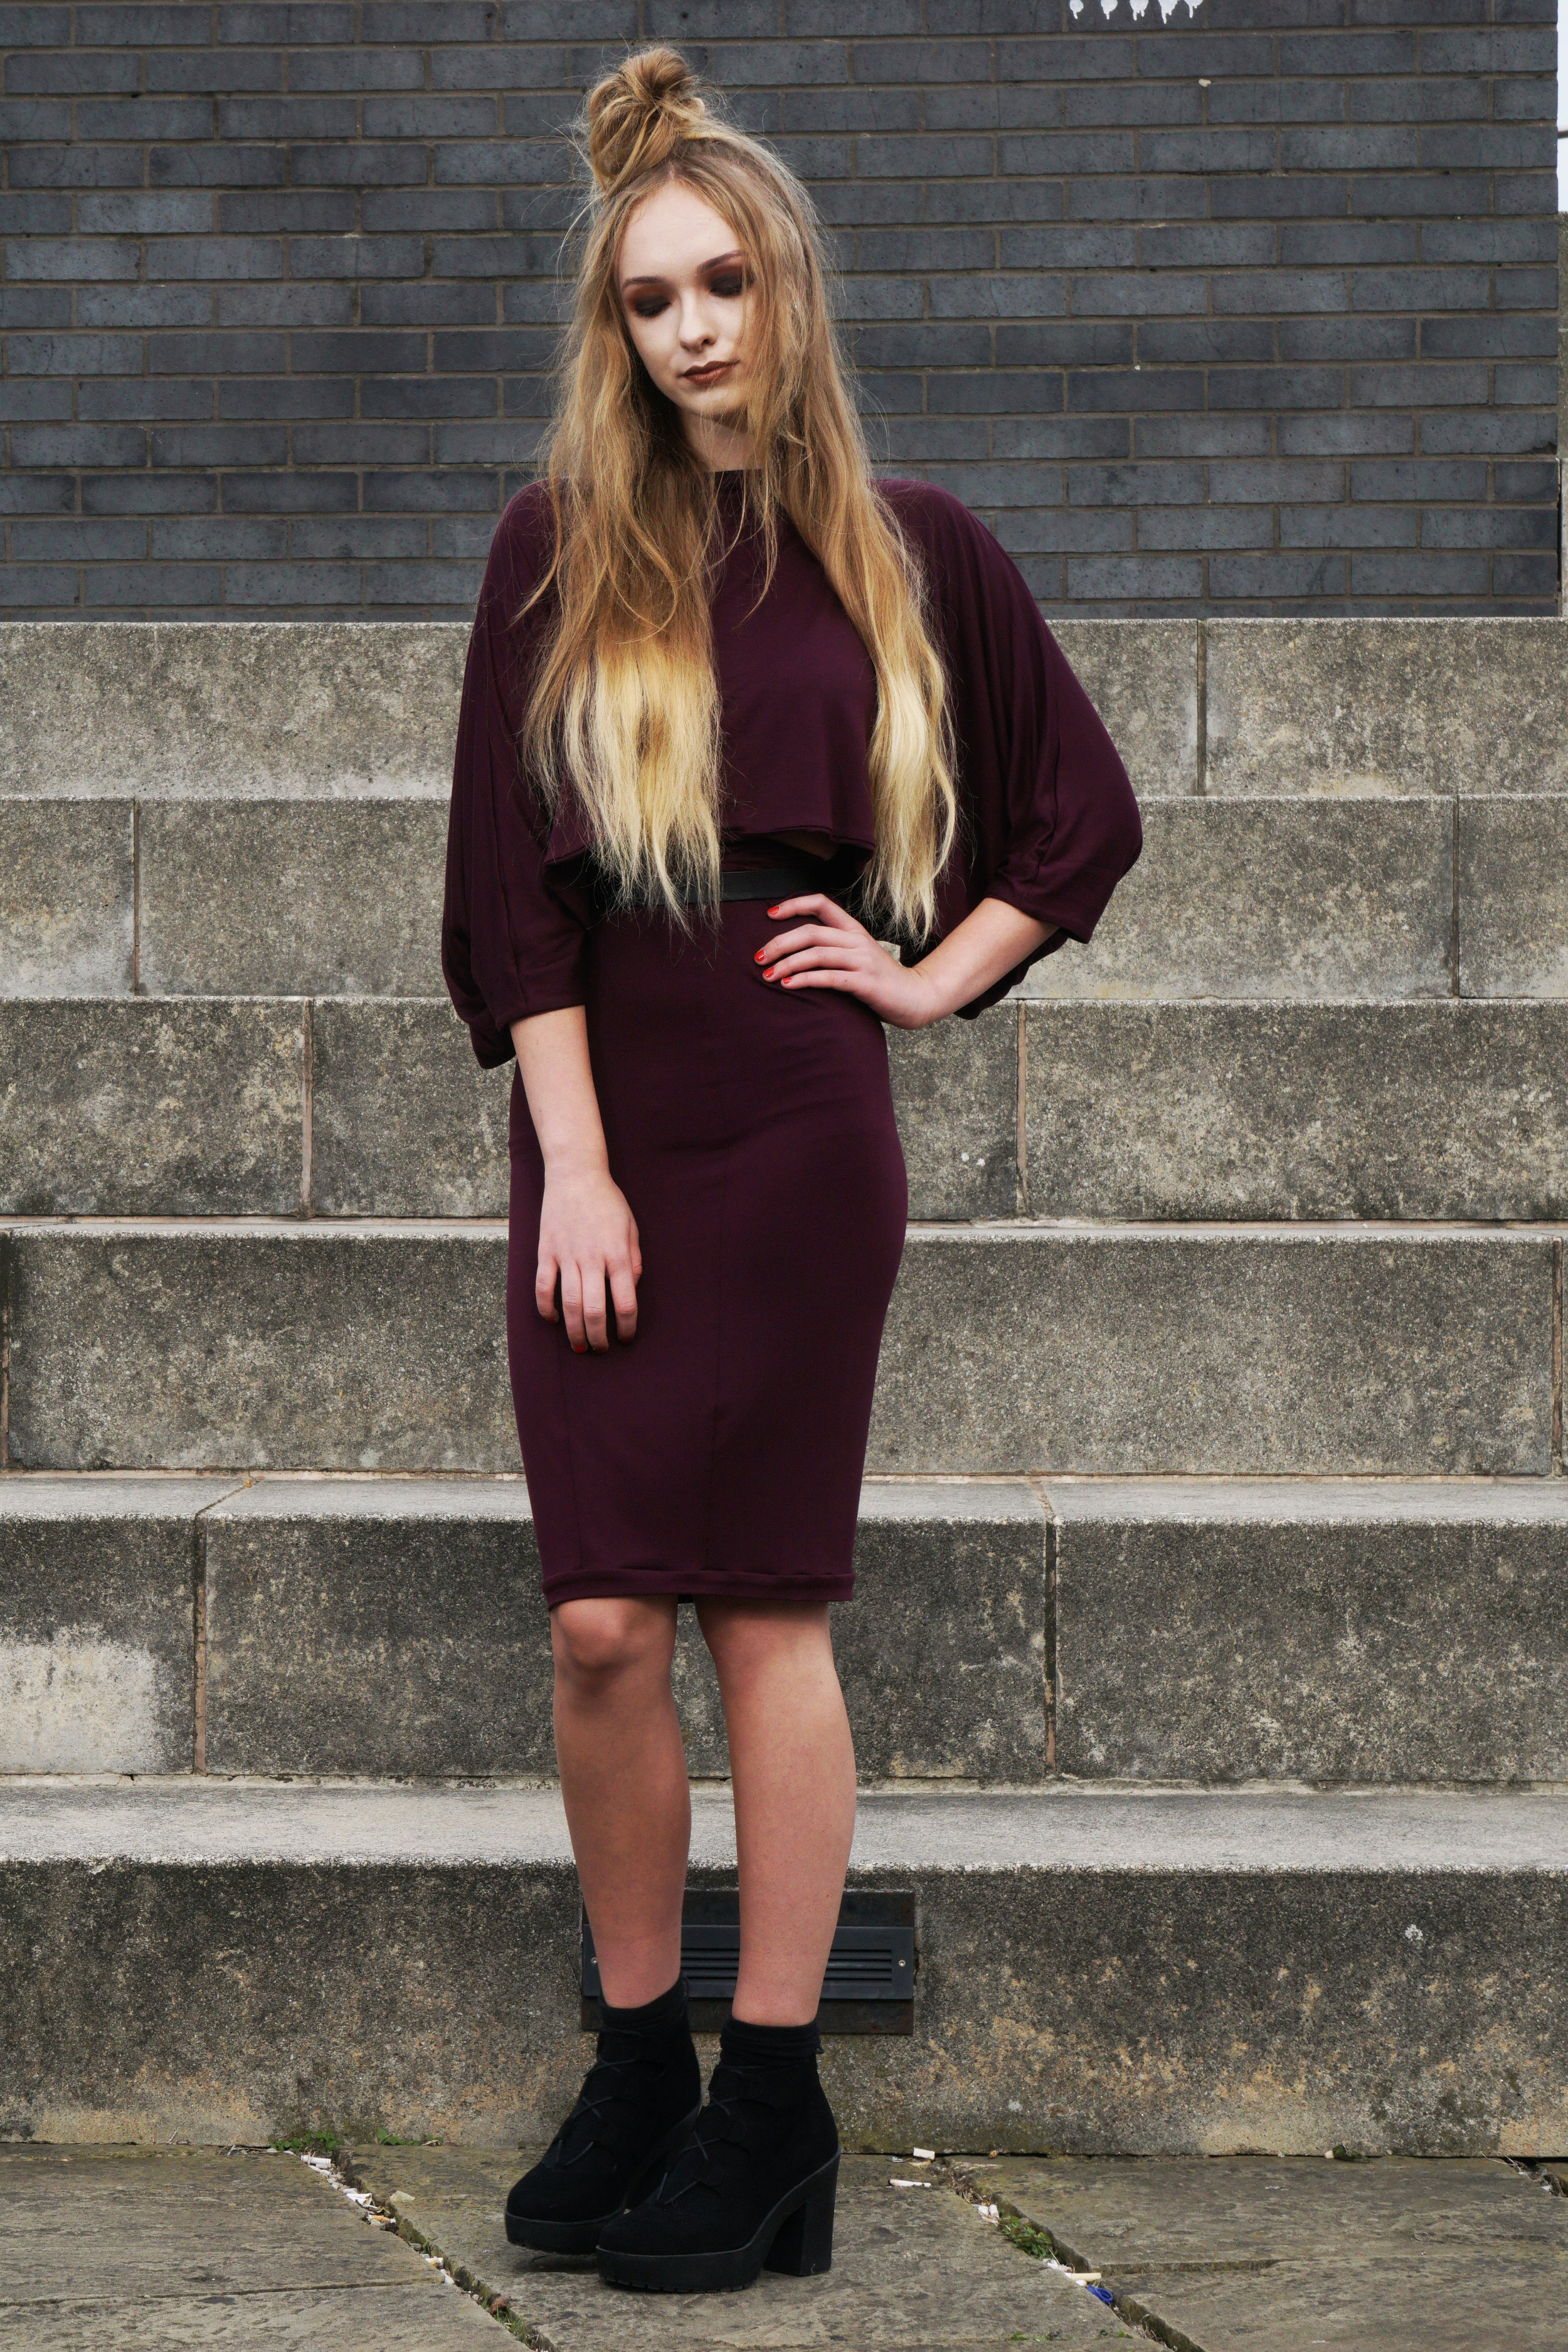 zaramia-ava-zaramiaava-leeds-fashion-designer-ethical-sustainable-plum-drape-mika-crop-top-yoko-skirt-leeds-dock-grunge-1